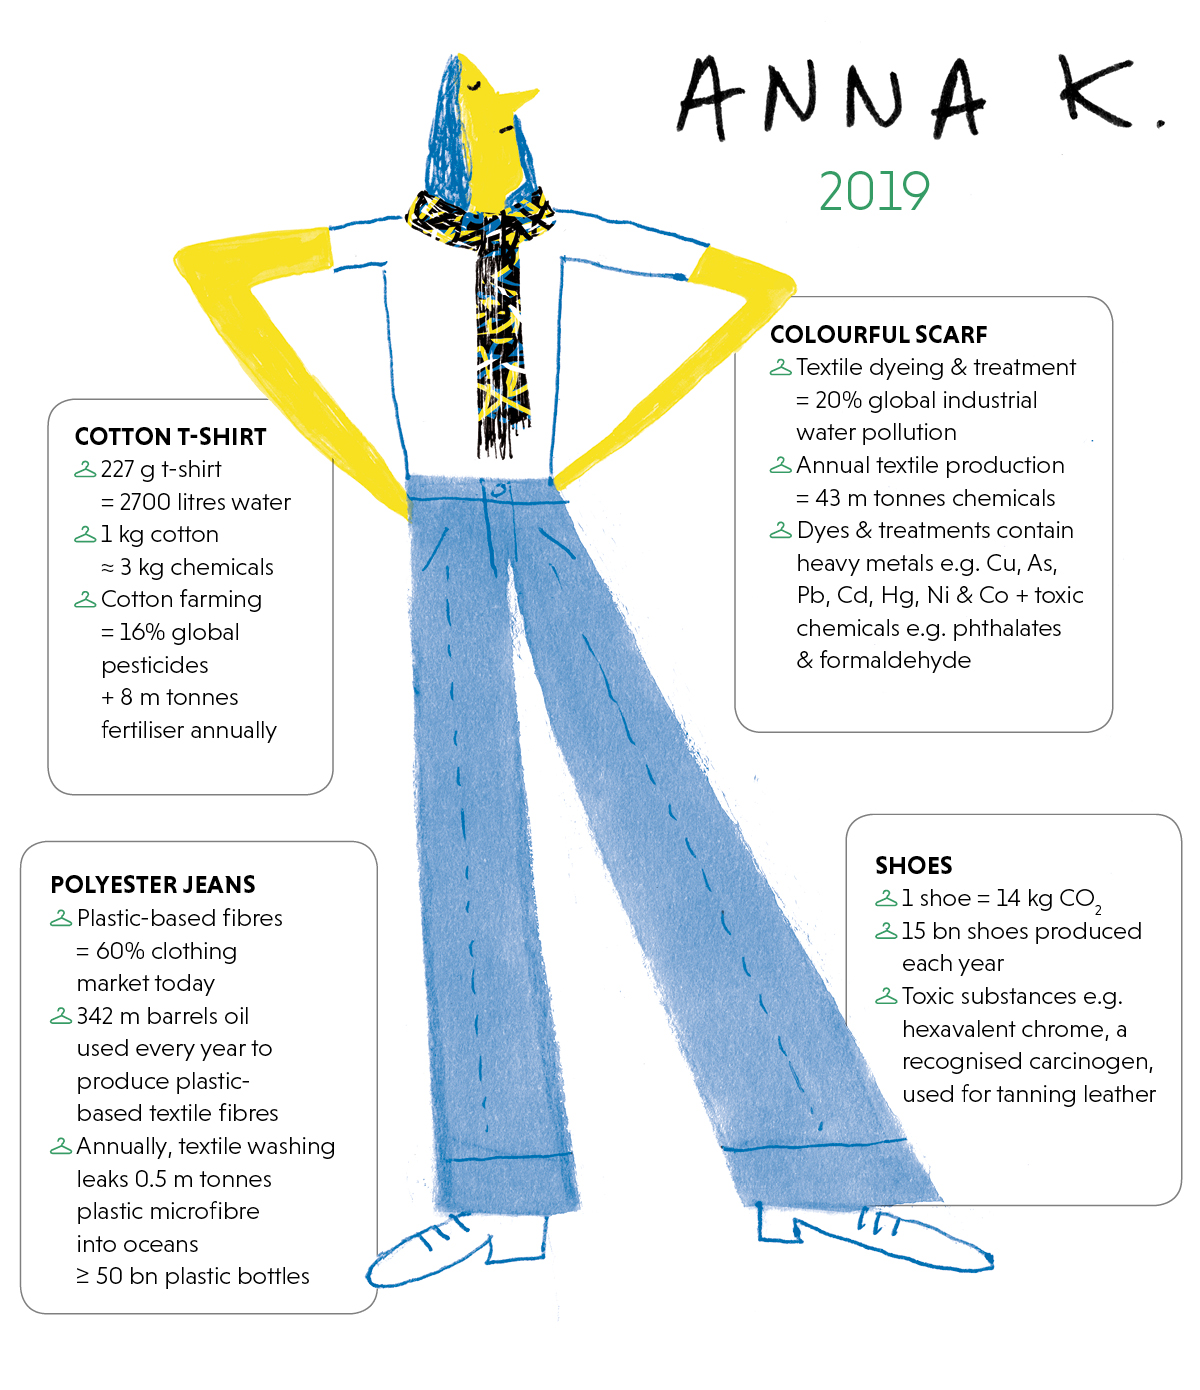 Infographic showing the outfit of Anna K in 2019 and its social, health and environmental impacts